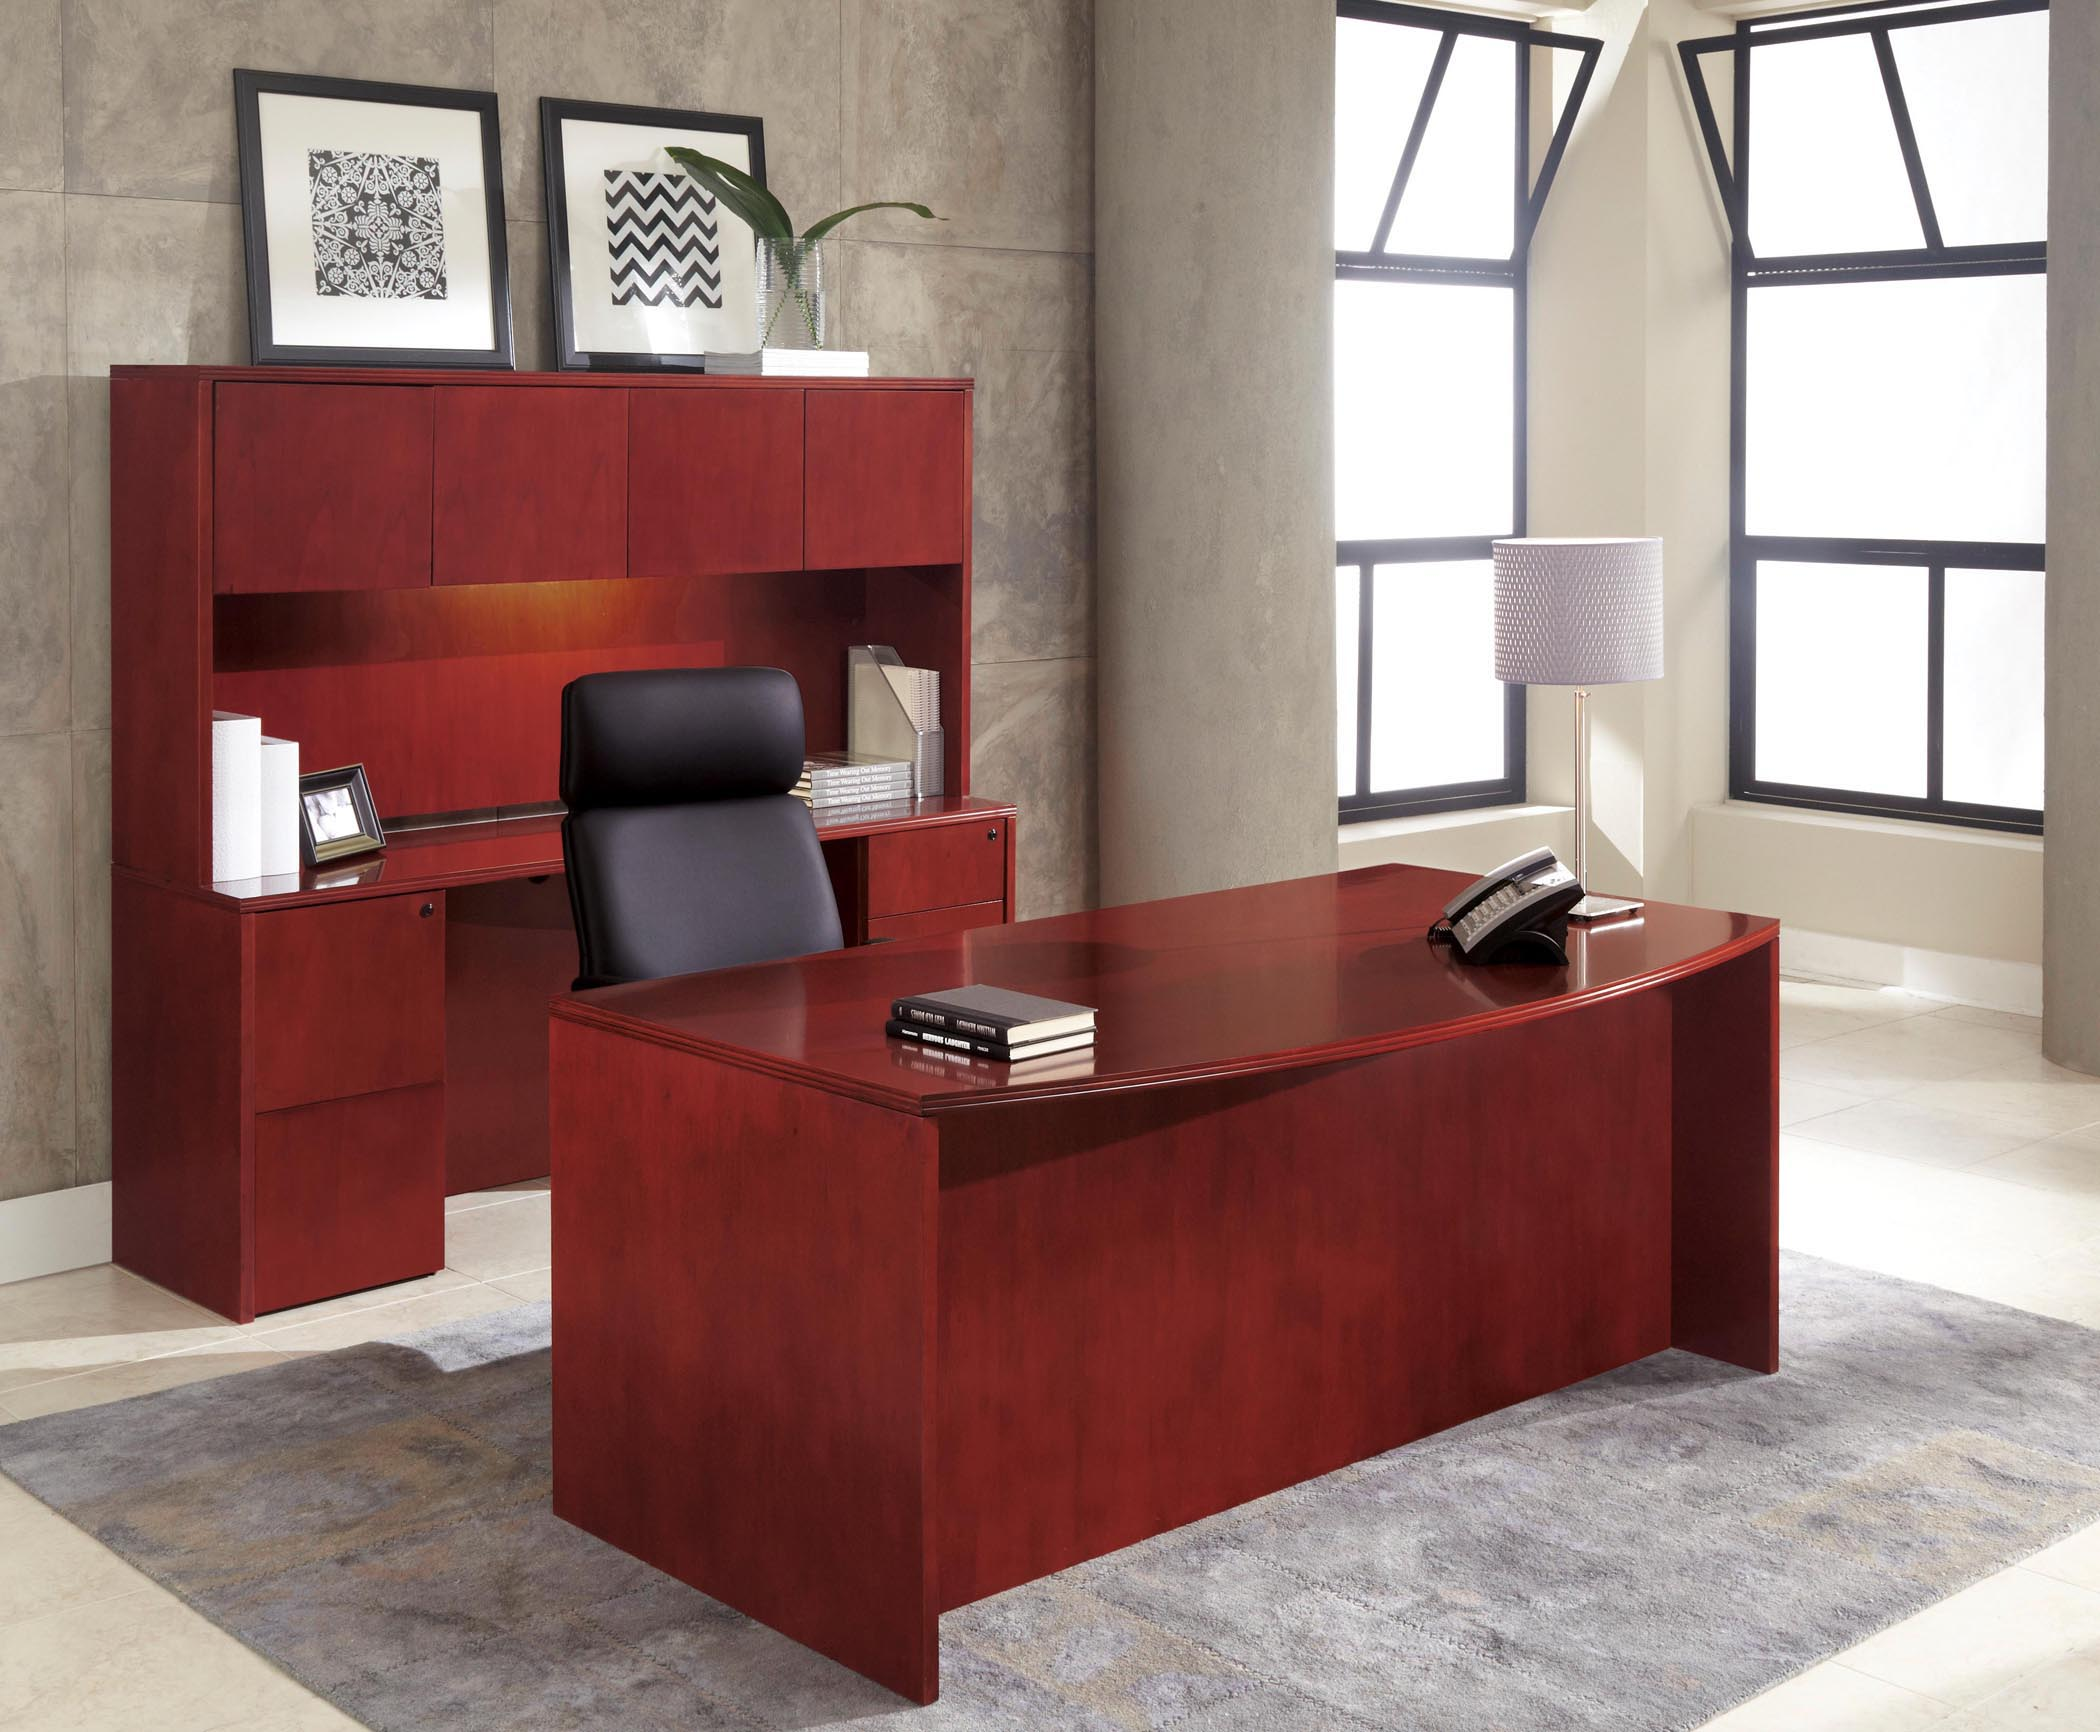 Red cherry wood furniture best decor things for Cherry furniture